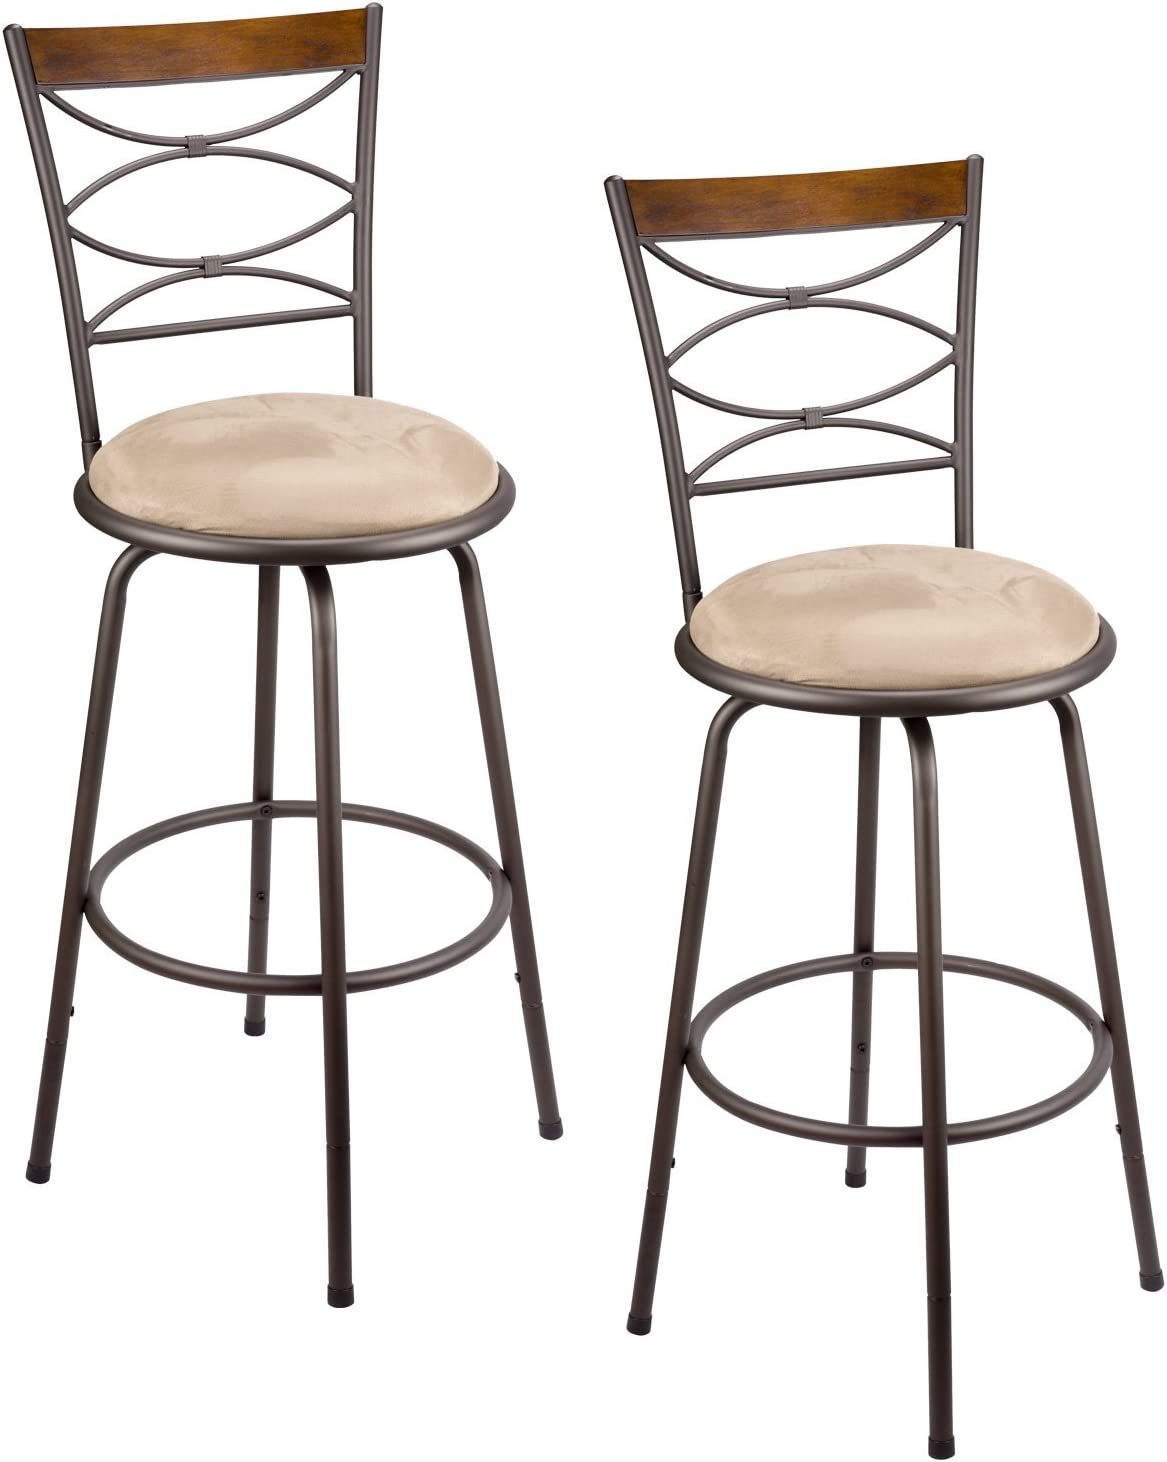 Revel Kira Home Avery 30 Adjustable Swivel Barstool w Real Wood Accent Back, Bronze Metal Finish, Set of 2